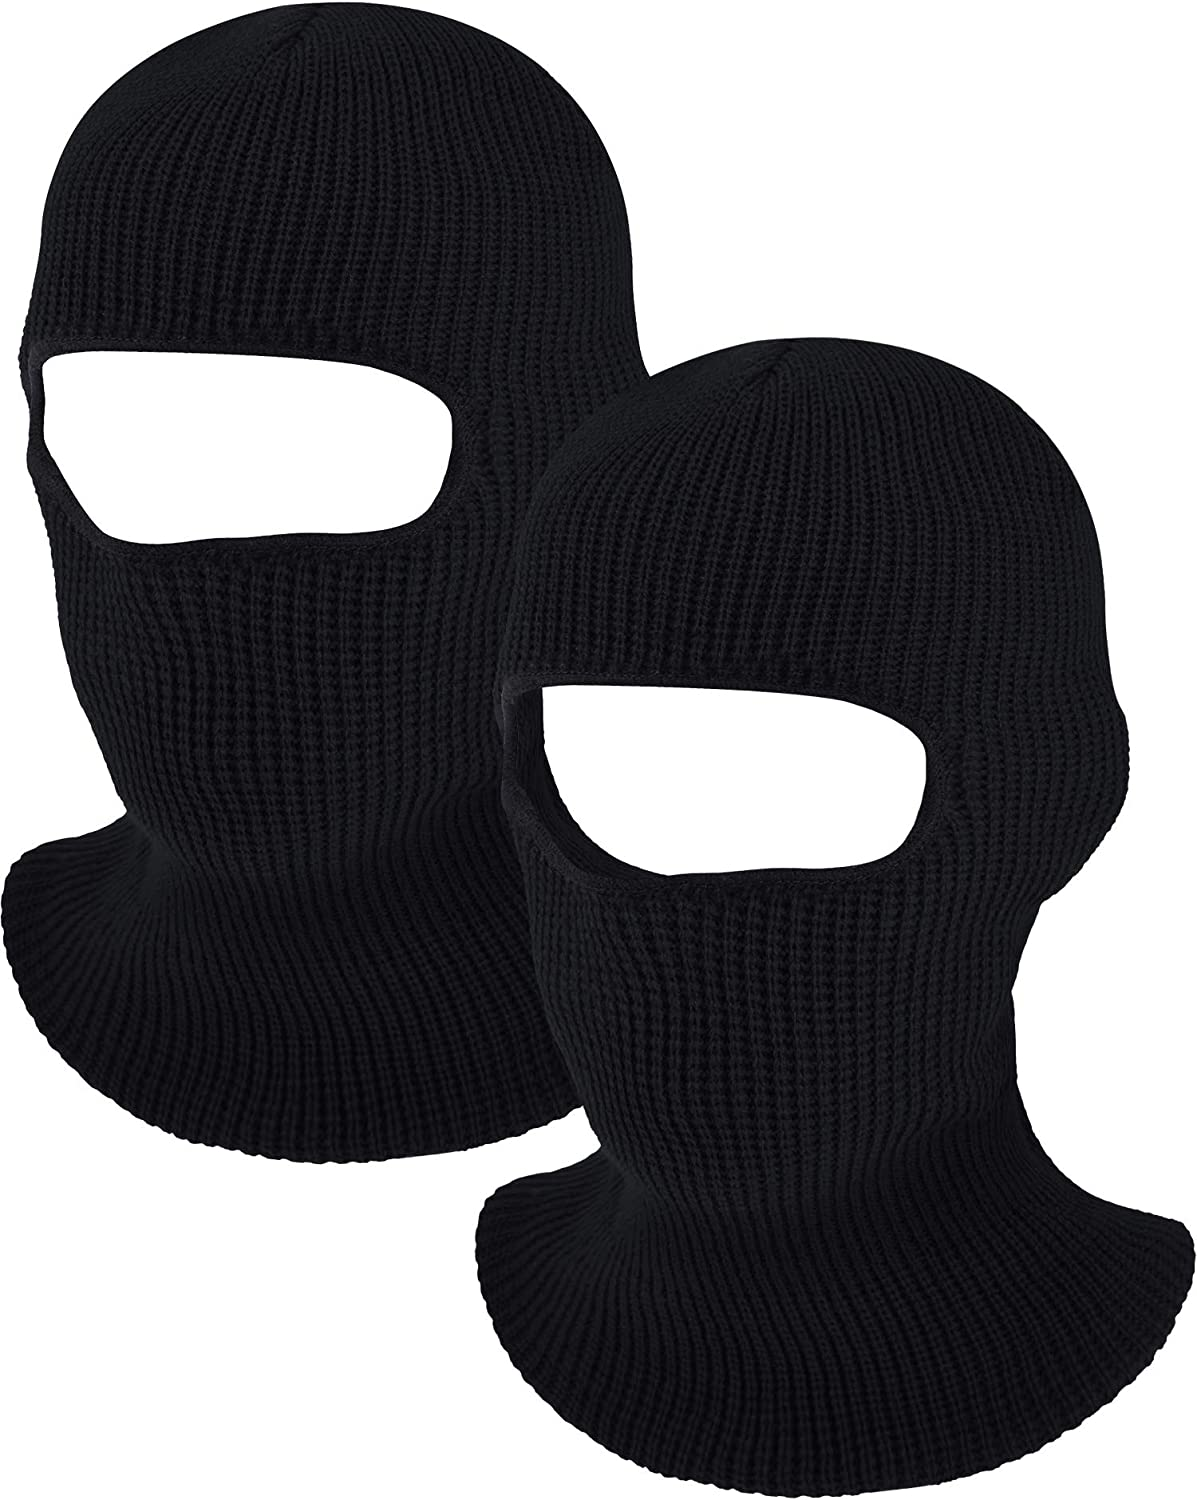 WILLBOND 2 Pieces 1-Hole Knitted Ski Full Face Covering Adult Winter Balaclava for Outdoor Sports